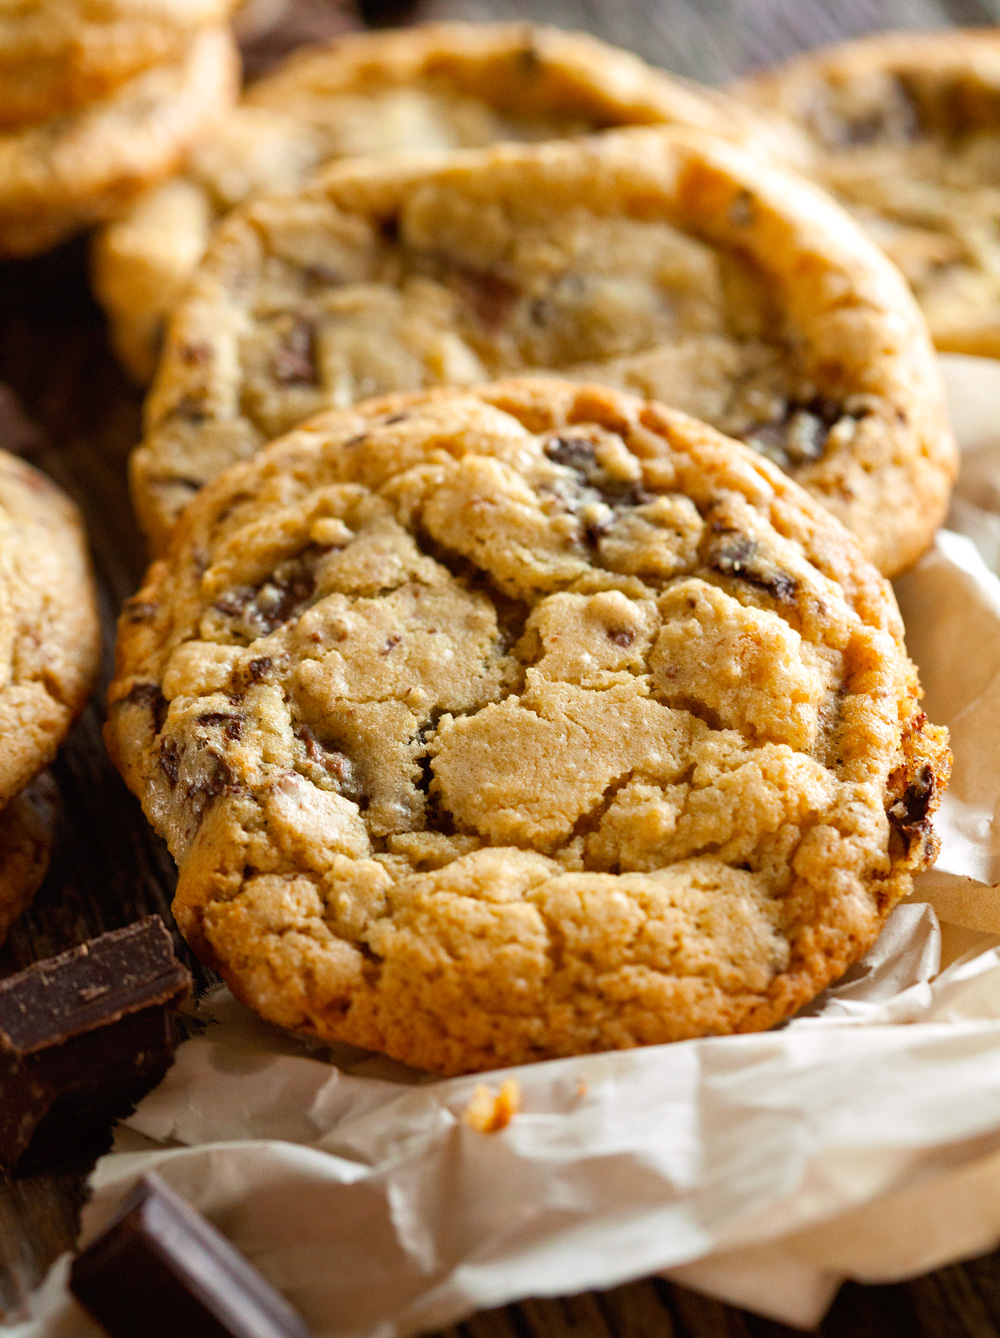 Chocoholic Chocolate Chunk Cookies by Deliciously Yum!